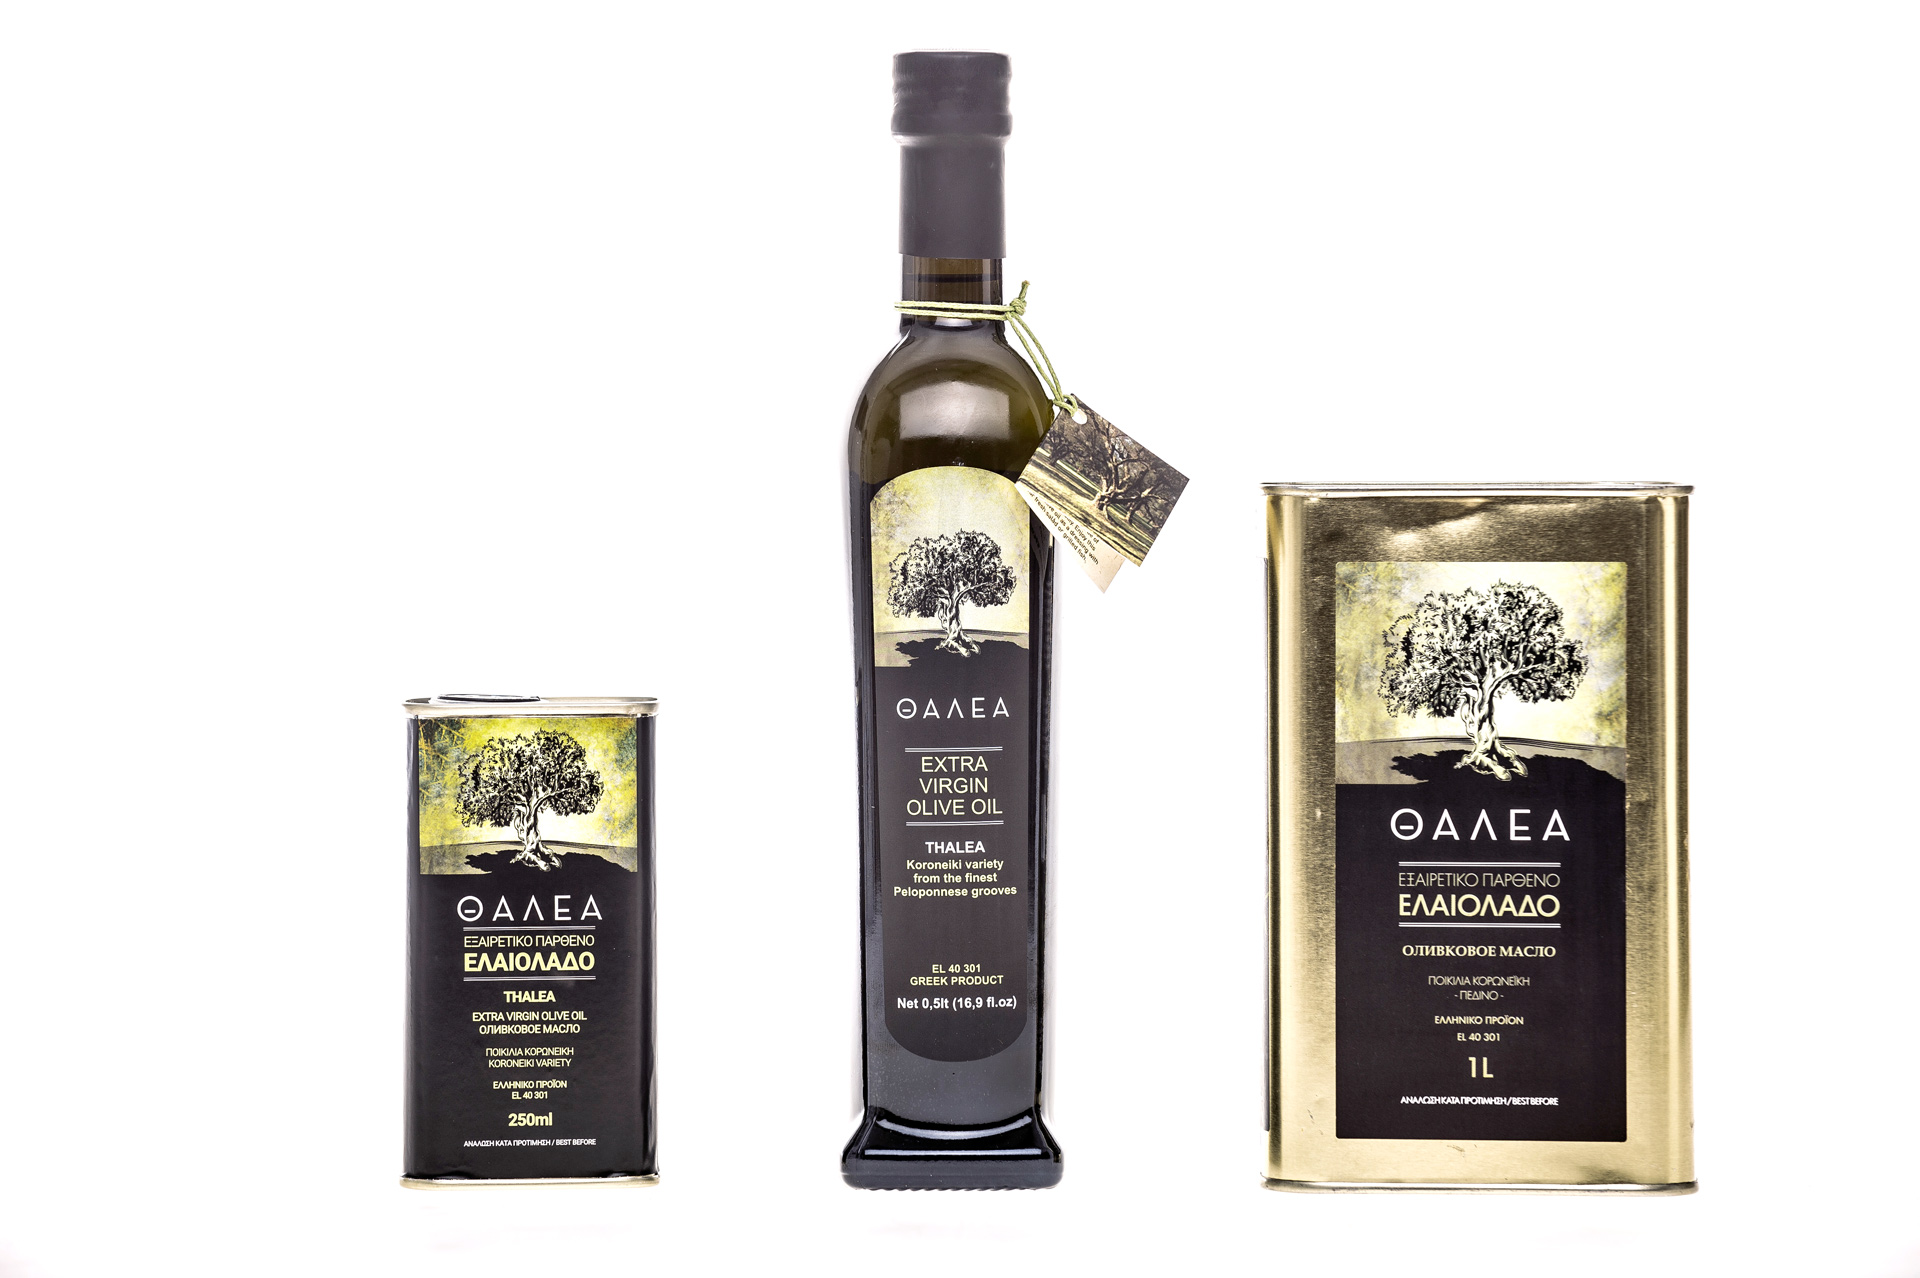 Extra virgin olive oil Thalea Bottles